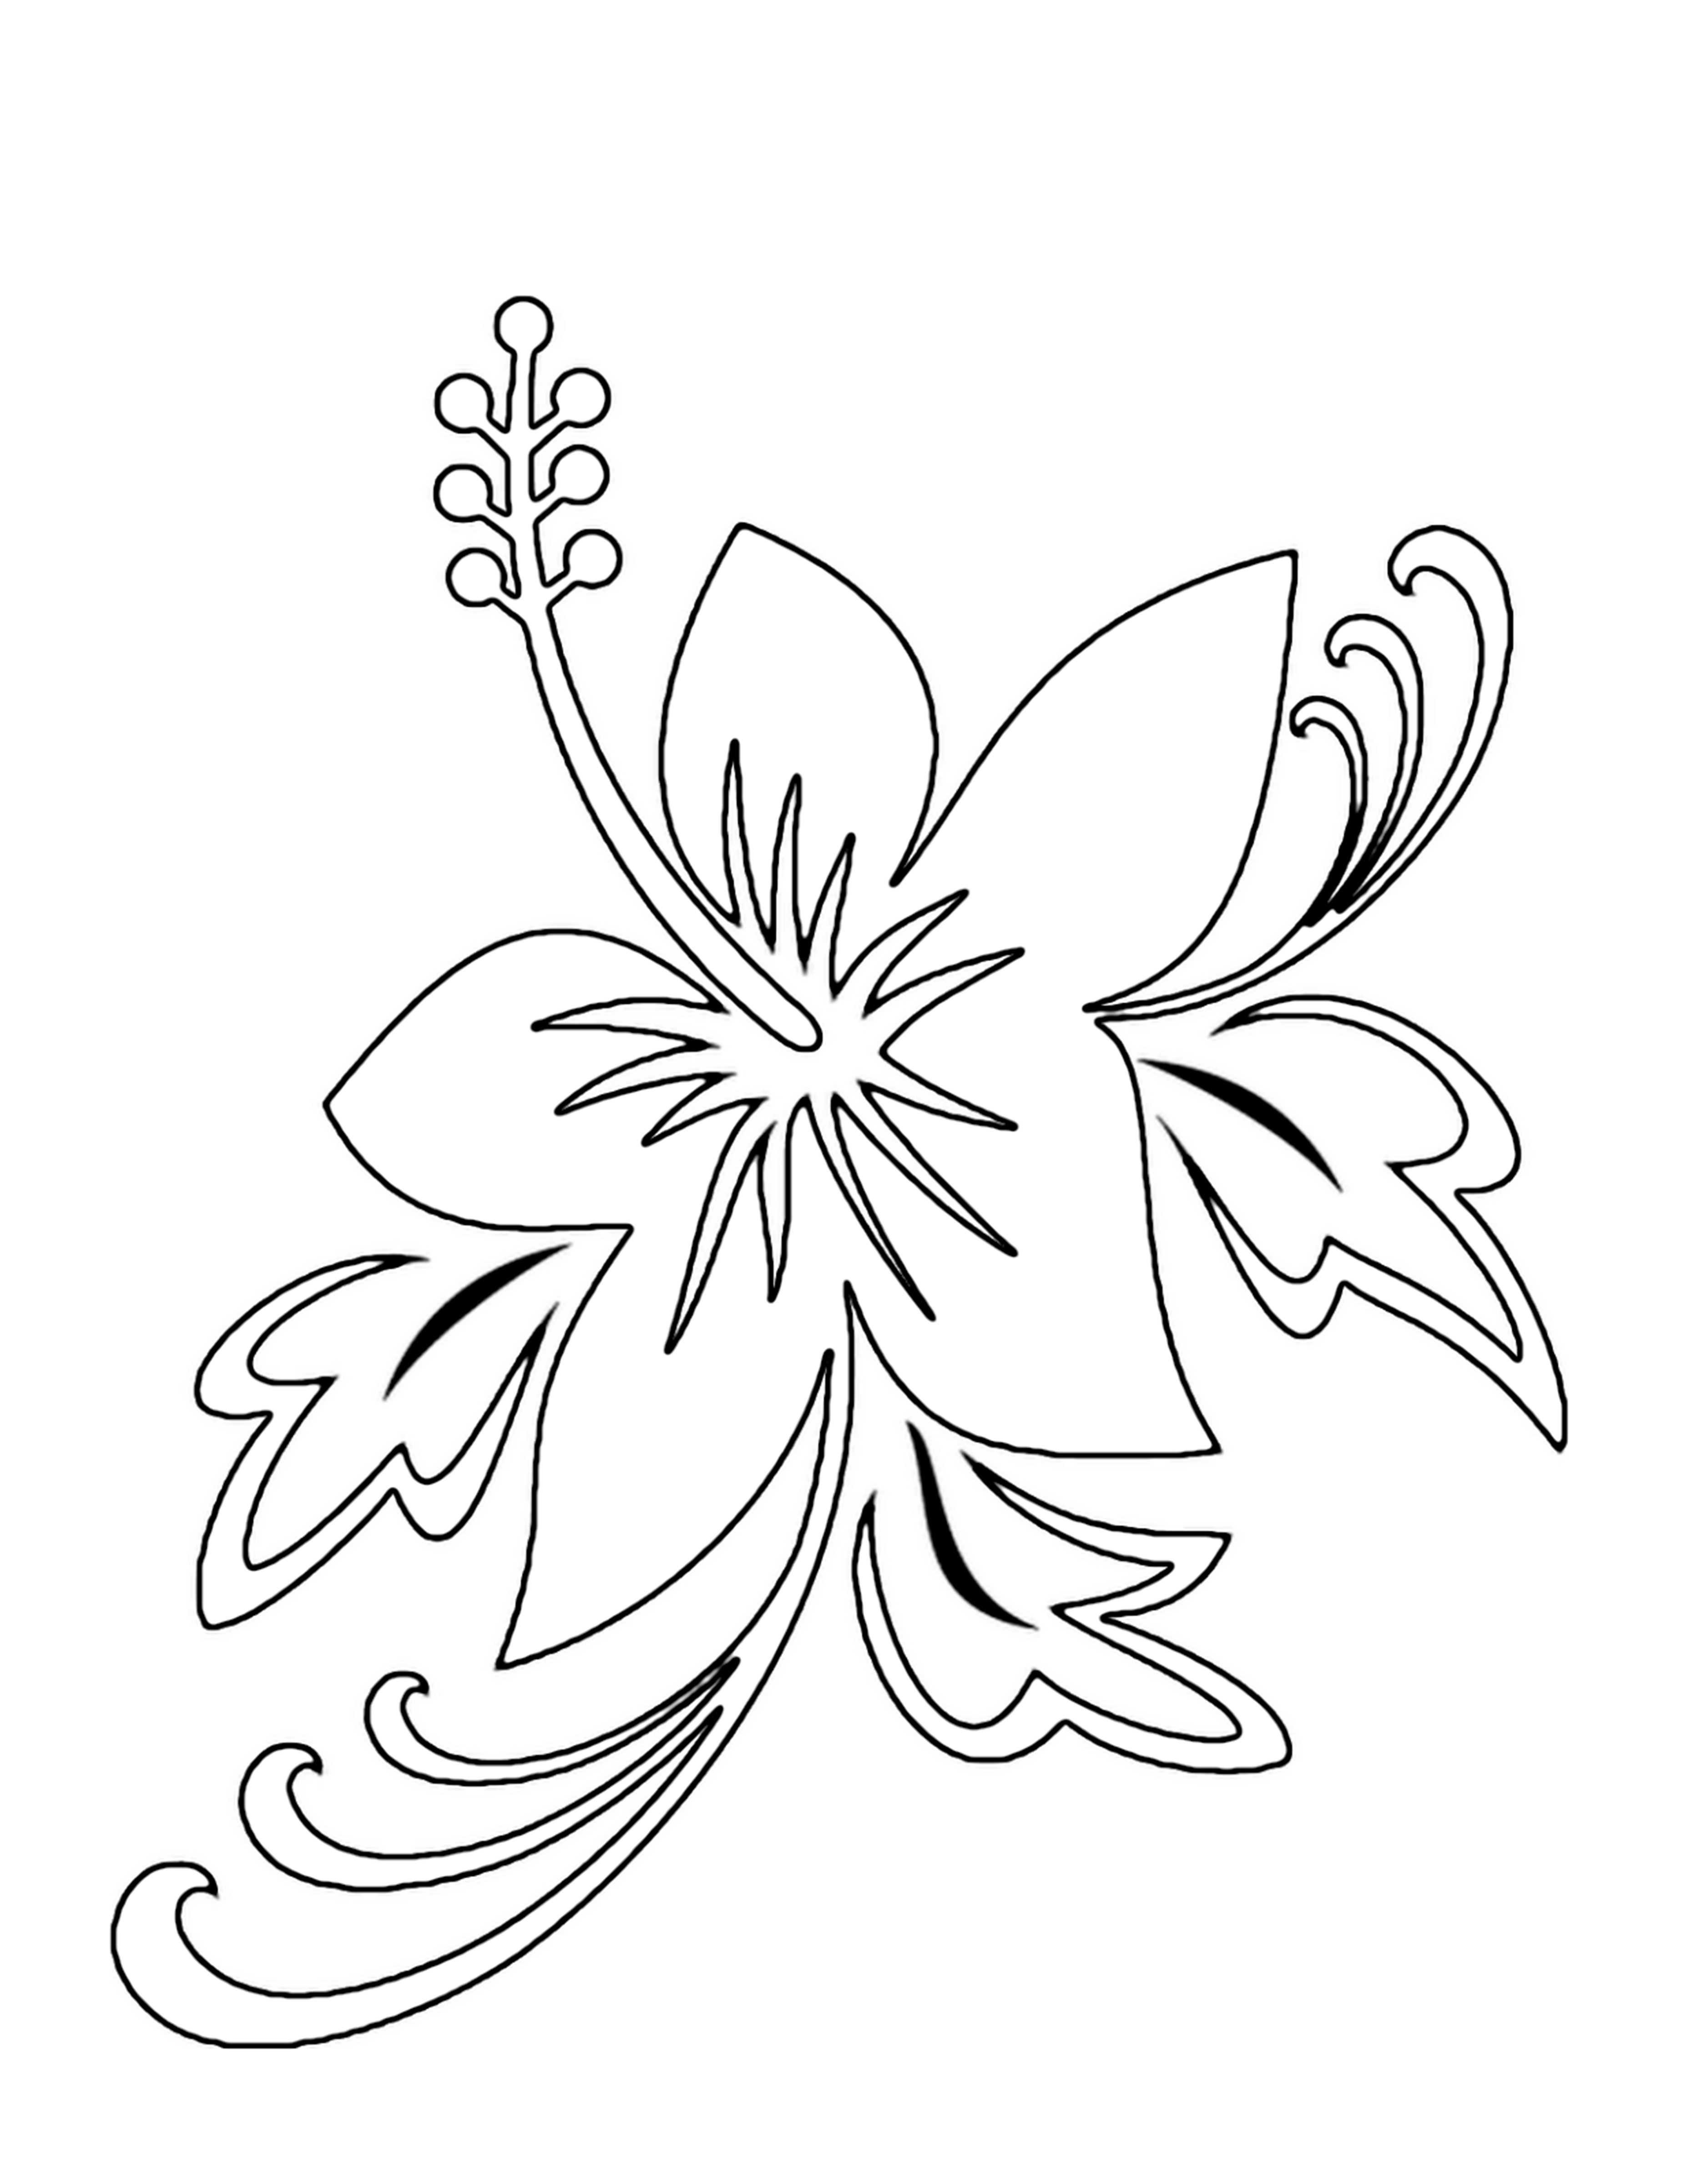 printable flowers to color coloring pages printables flowers shoaib bilal flowers flowers color printable to